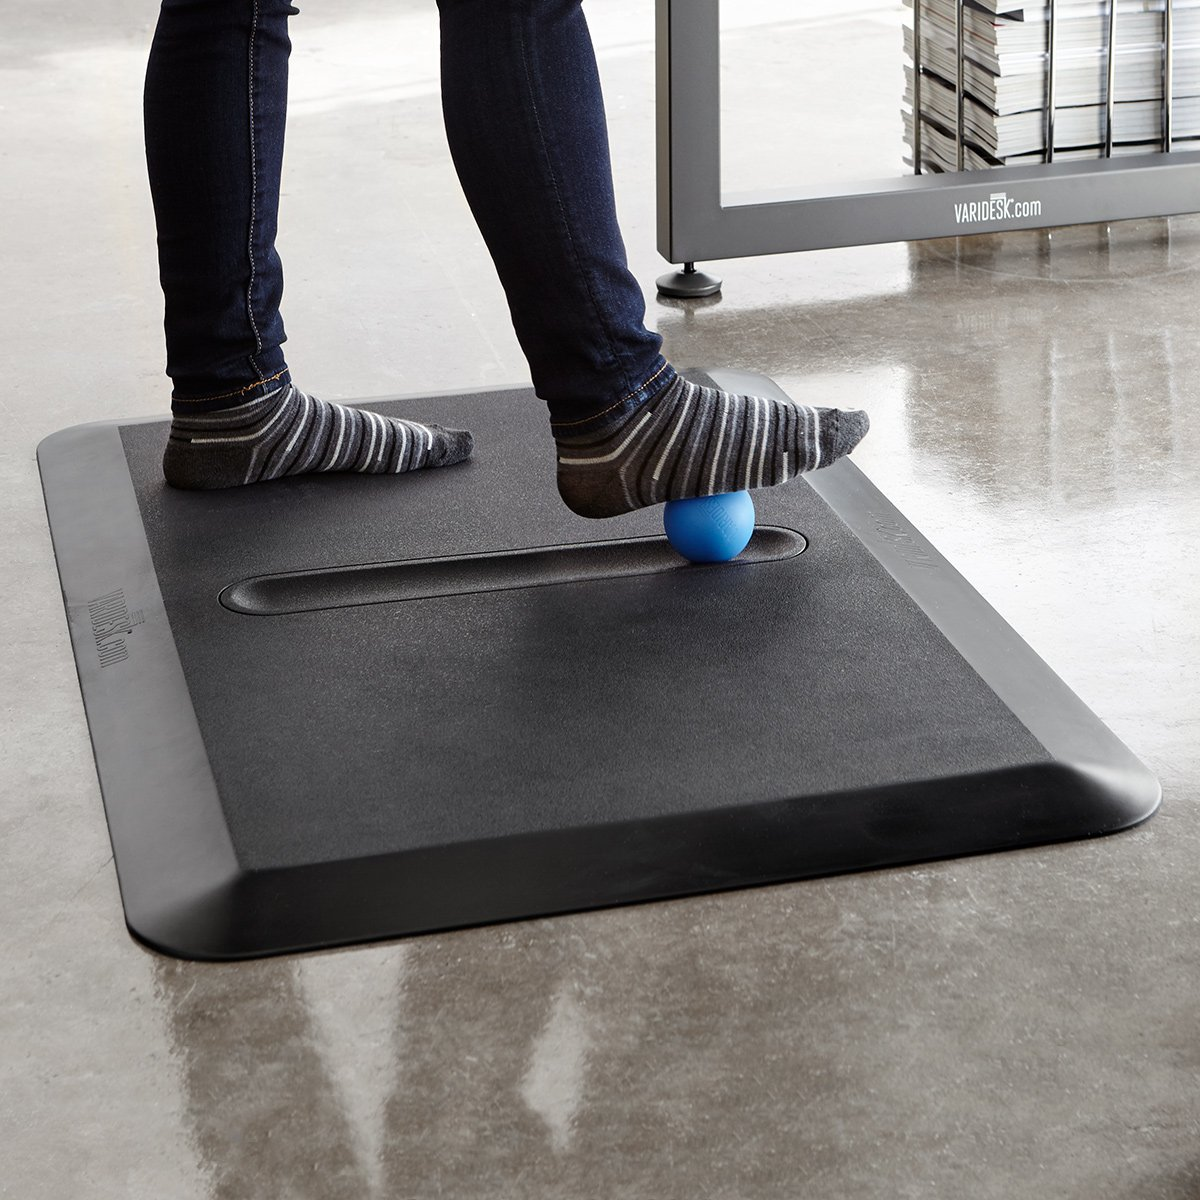 VARIDESK - Standing Desk Anti-Fatigue Comfort Floor Mat – ActiveMat Groove by VARIDESK